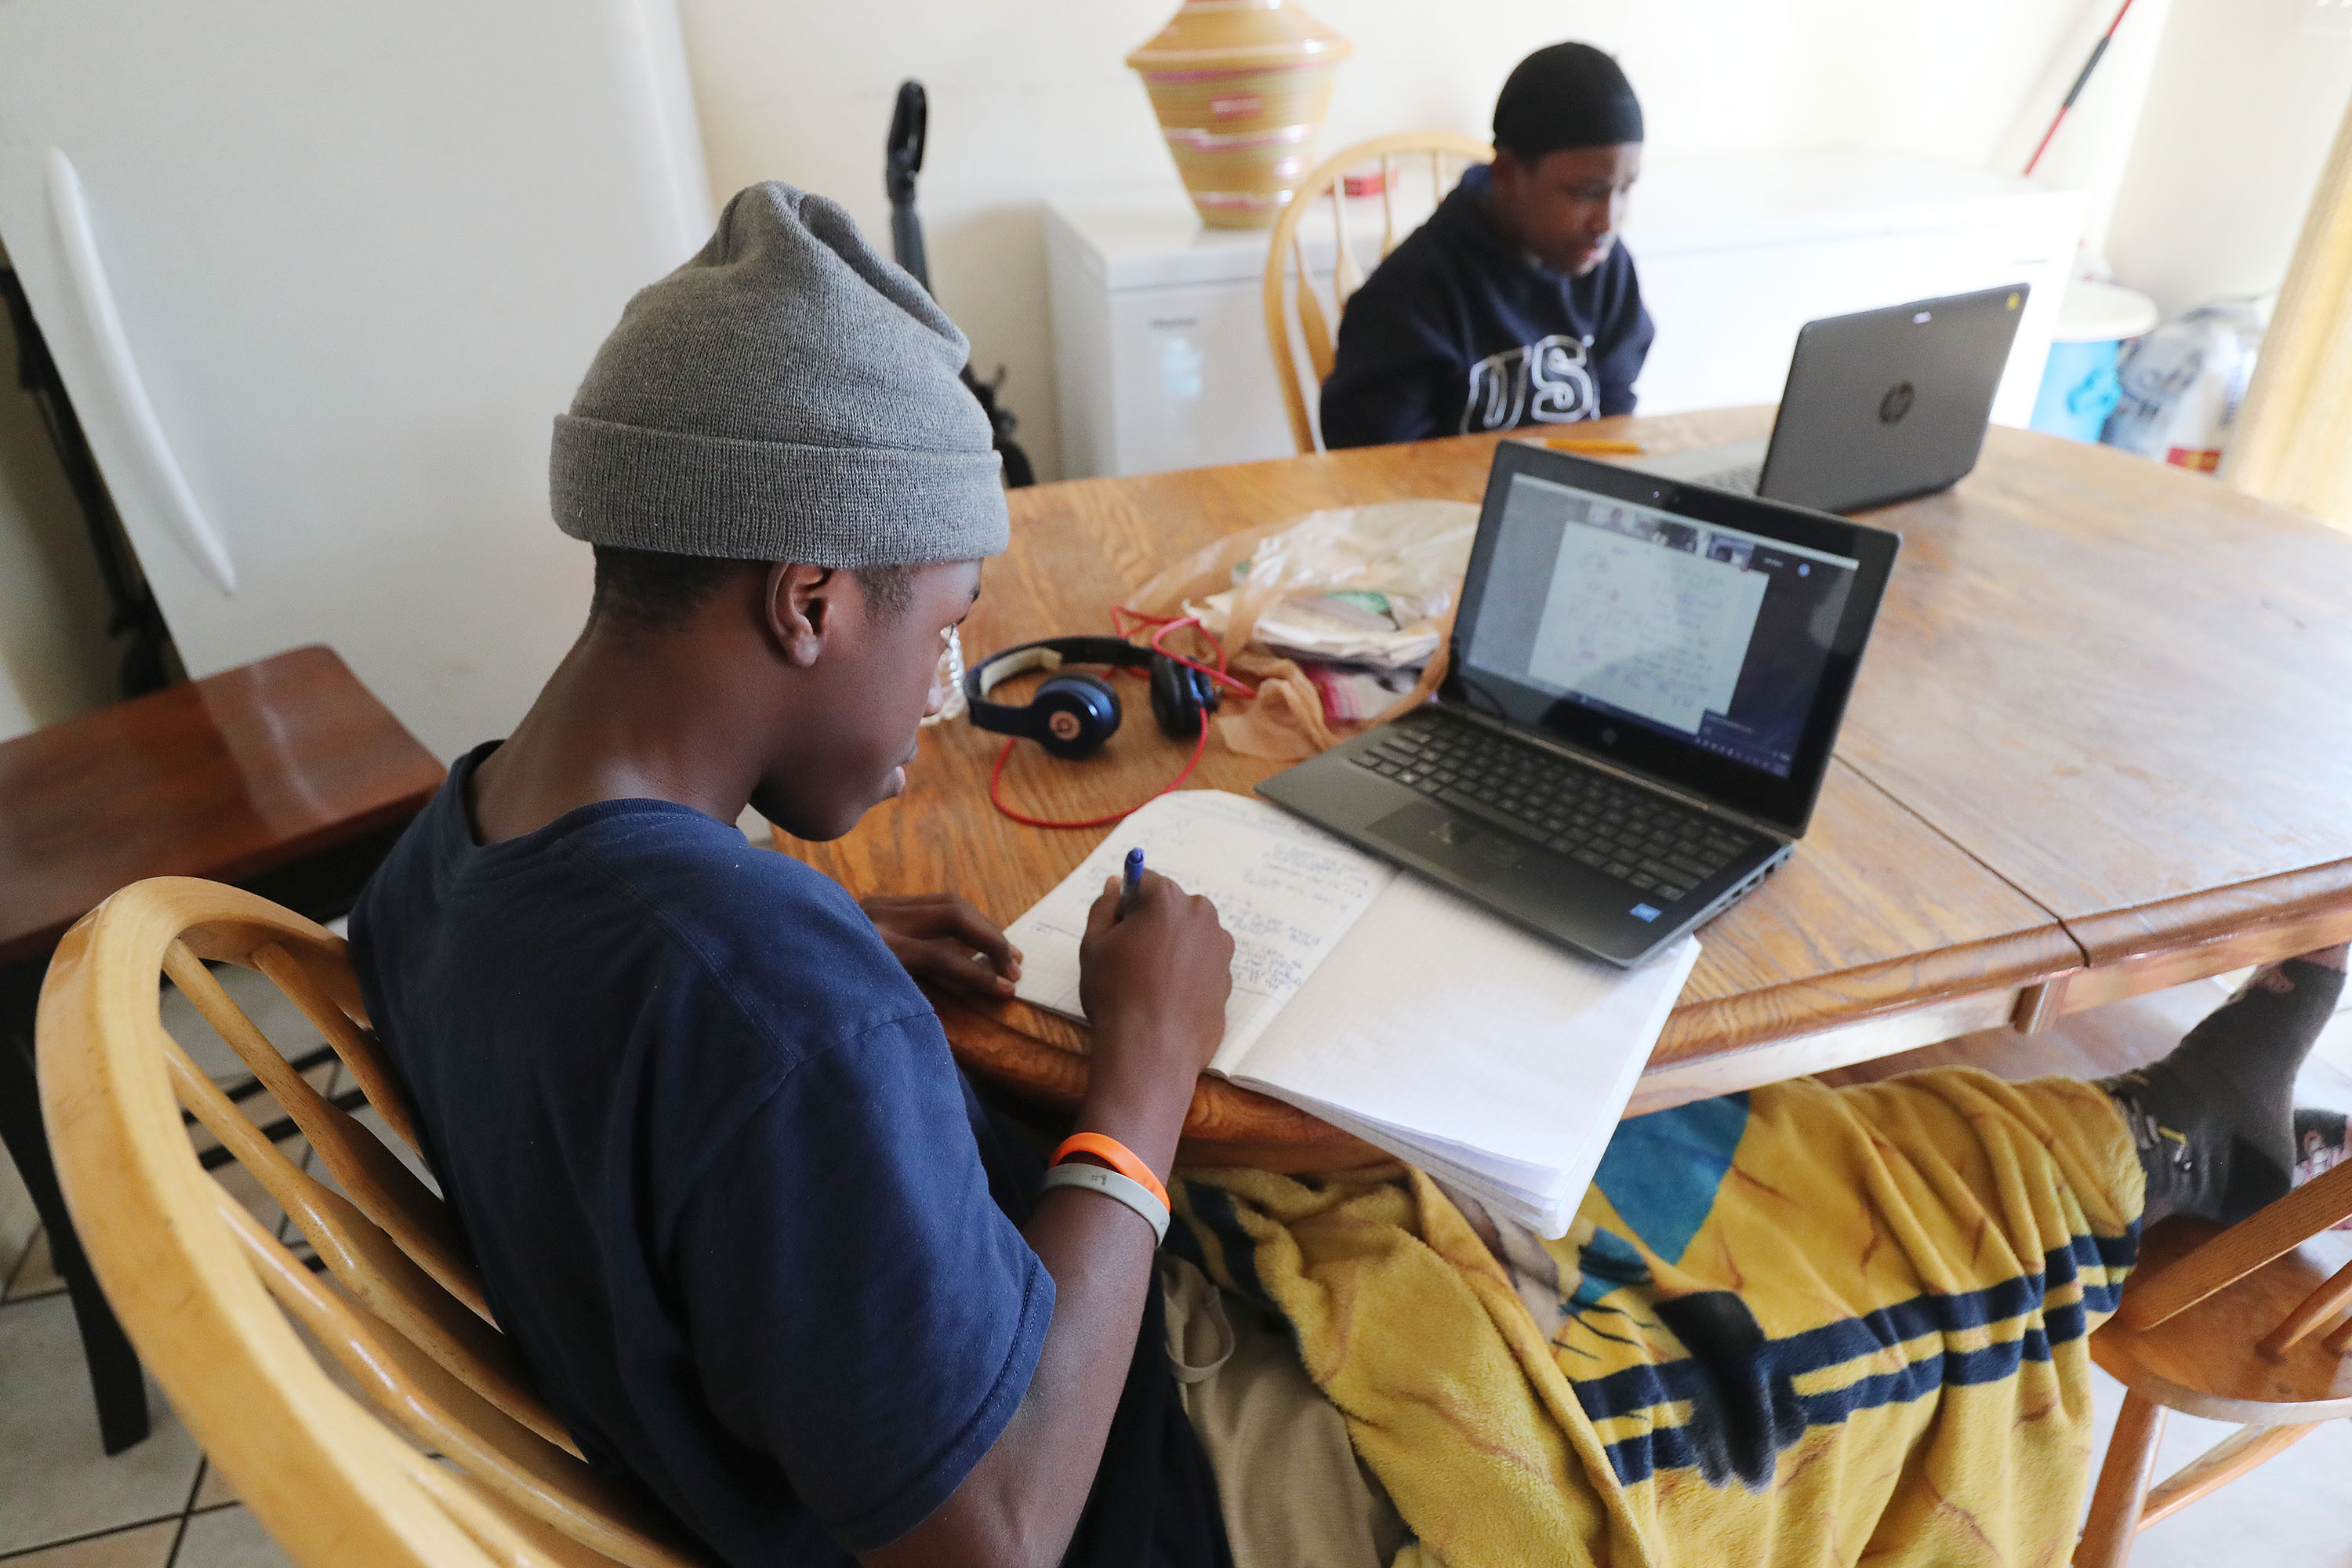 Richard Vyukusengere, left, and his brother, Didace Mahoro, attend school remotely at home in Salt Lake City on Tuesday, Jan. 19, 2021. Salt Lake City parents who are suing the Salt Lake City School District are asking for an injunction to allow for an in-person learning option.